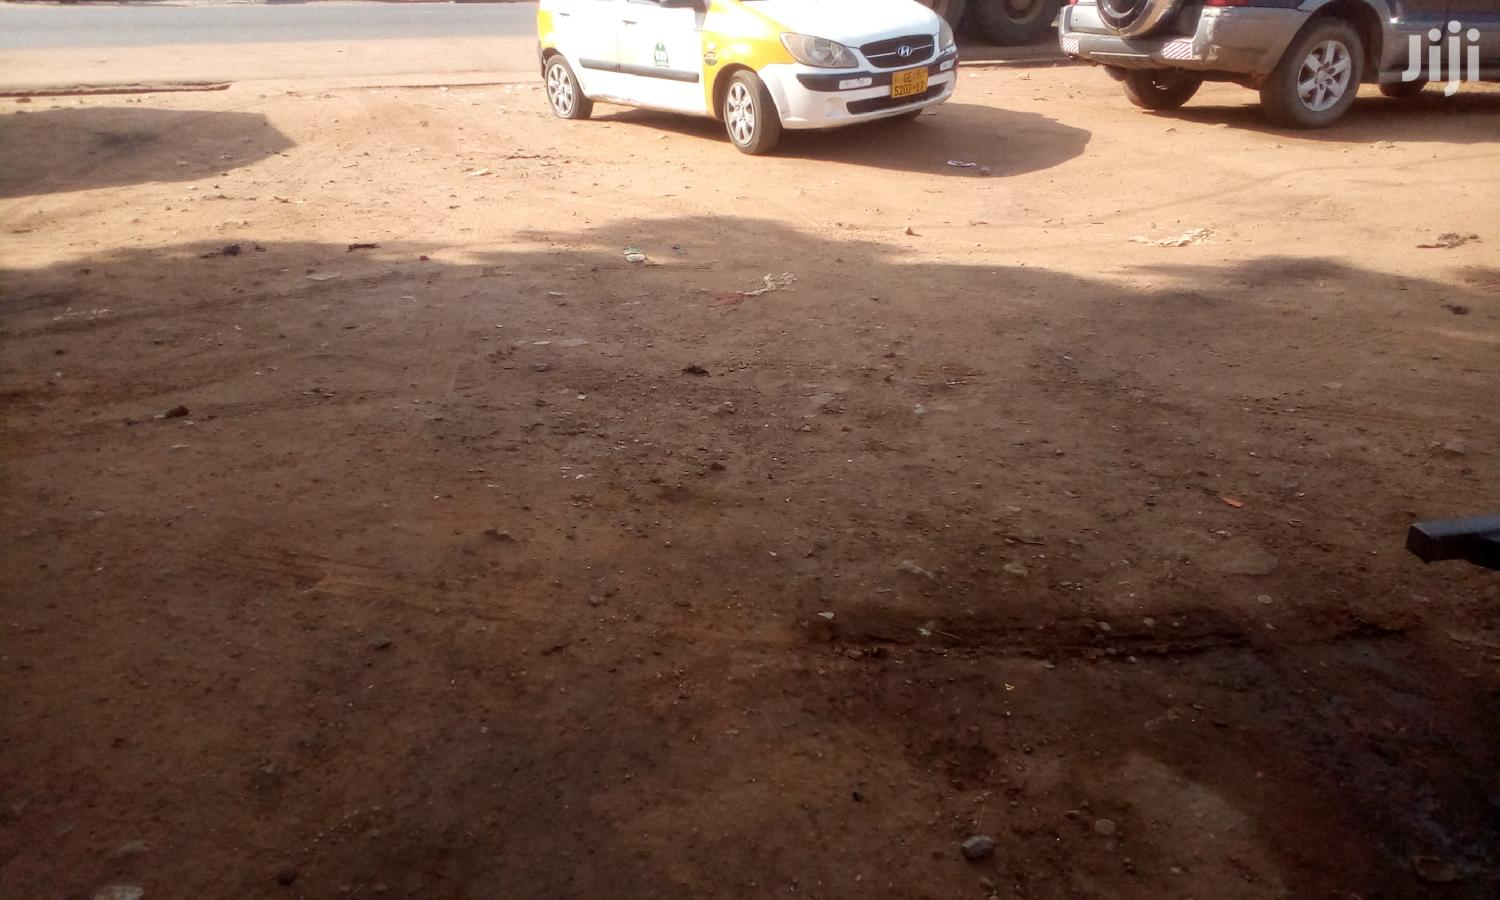 Genuine 2 Plots of Land Is Up for Sale at Madina Zongo Junct